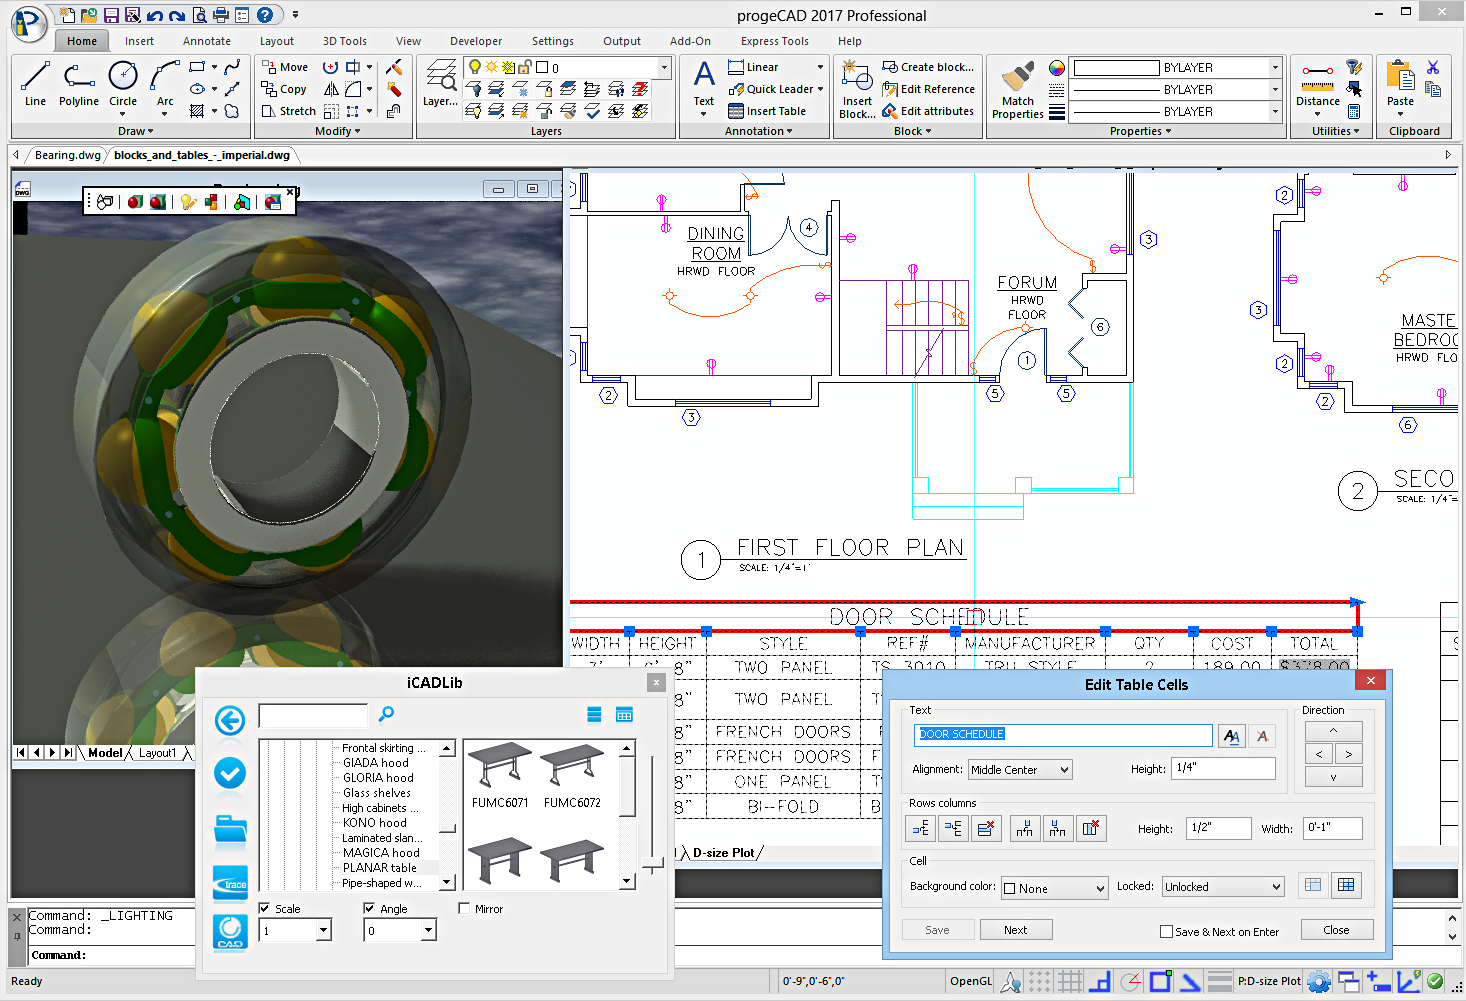 Progecad 2018 professional cad software 18 0 2 8 at soft Simple cad software